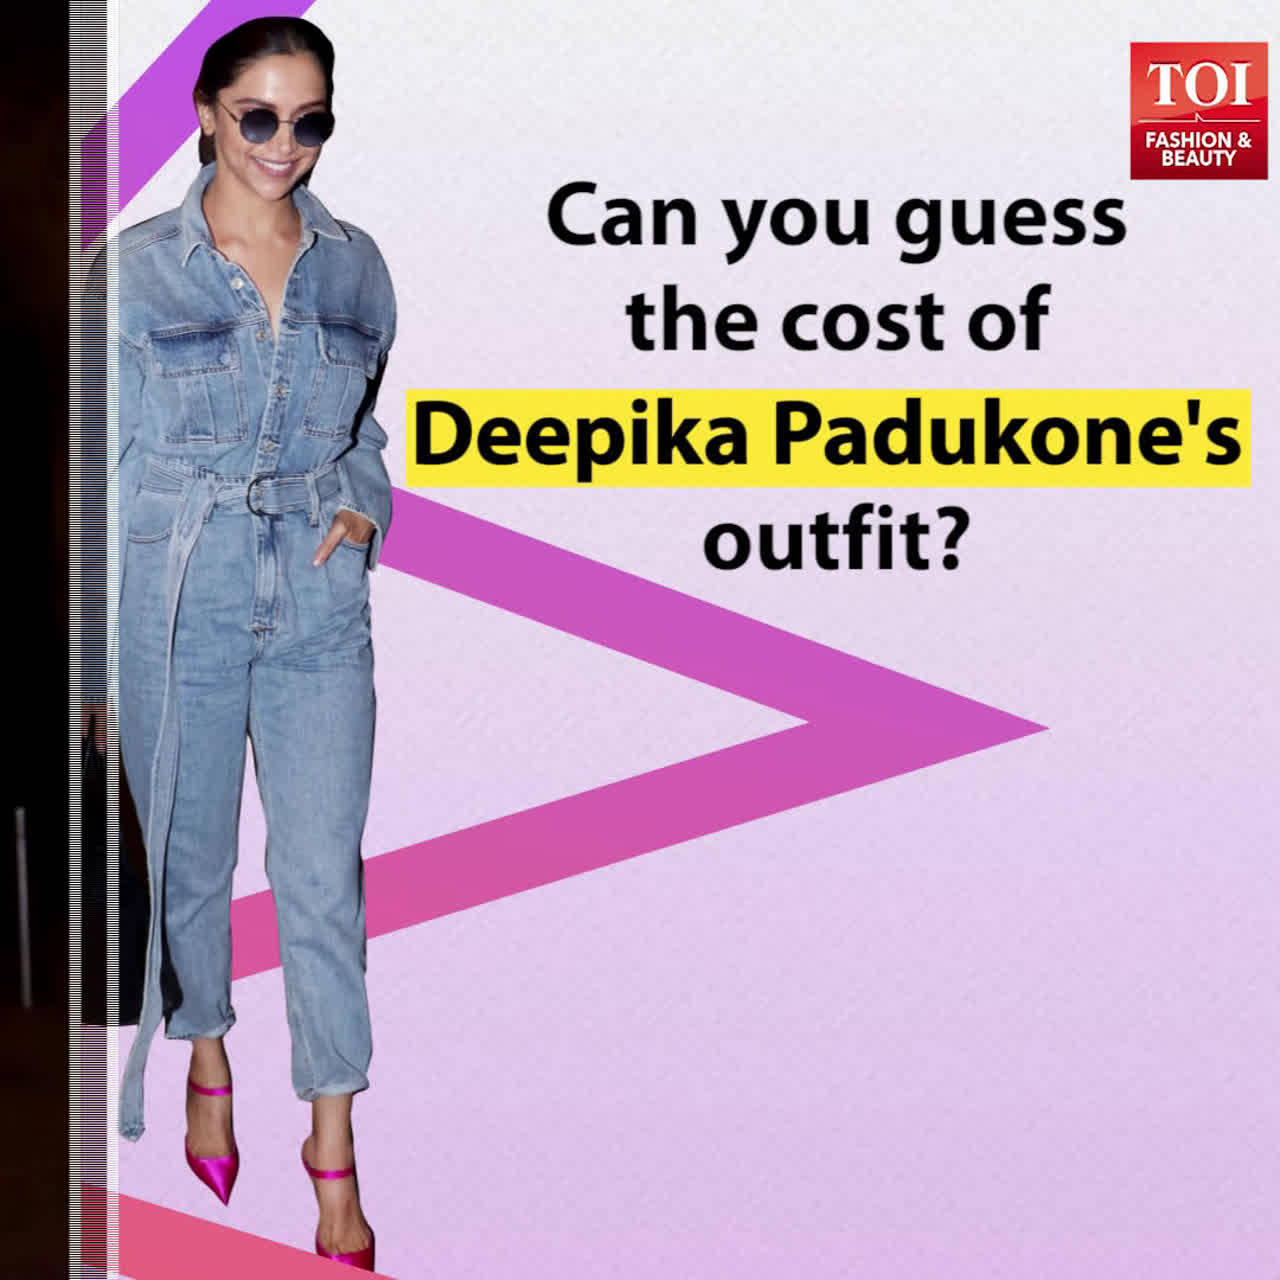 can-you-guess-the-cost-of-deepika-padukones-outfit